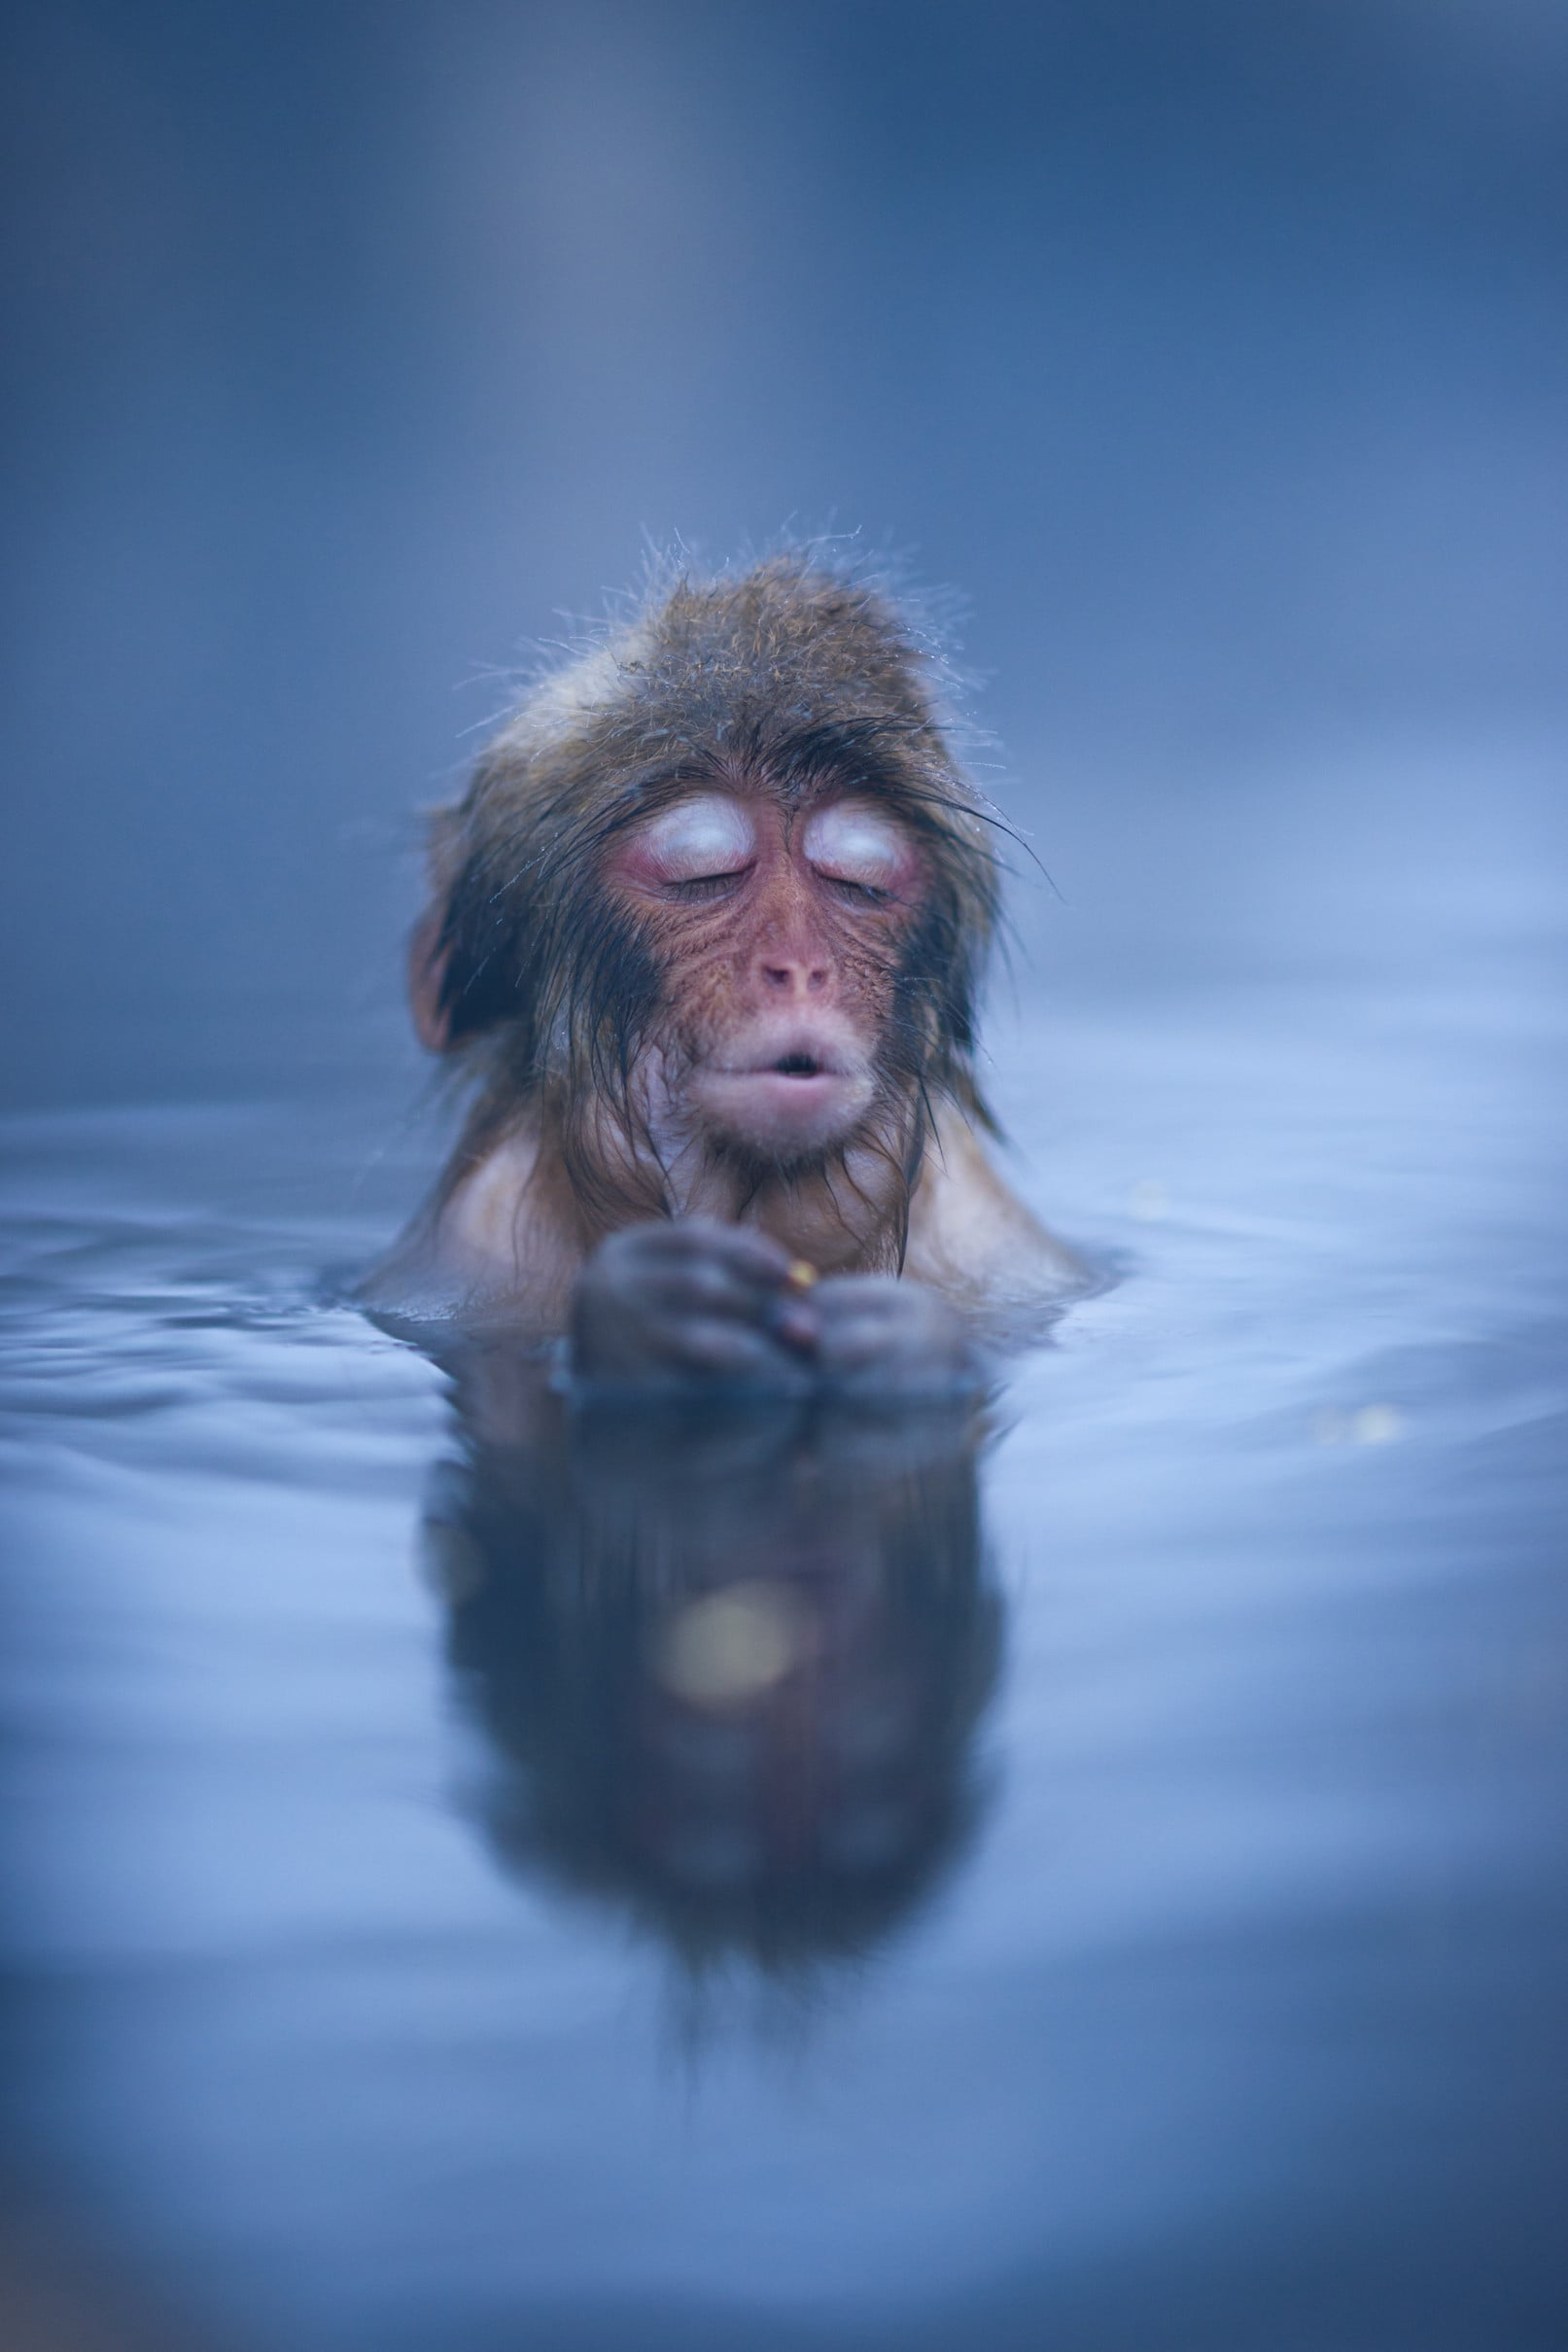 """A monkey relaxing in a hot spring in Japan's Nagano Prefecture."" Source: Reddit user HesterLee via Imgur"